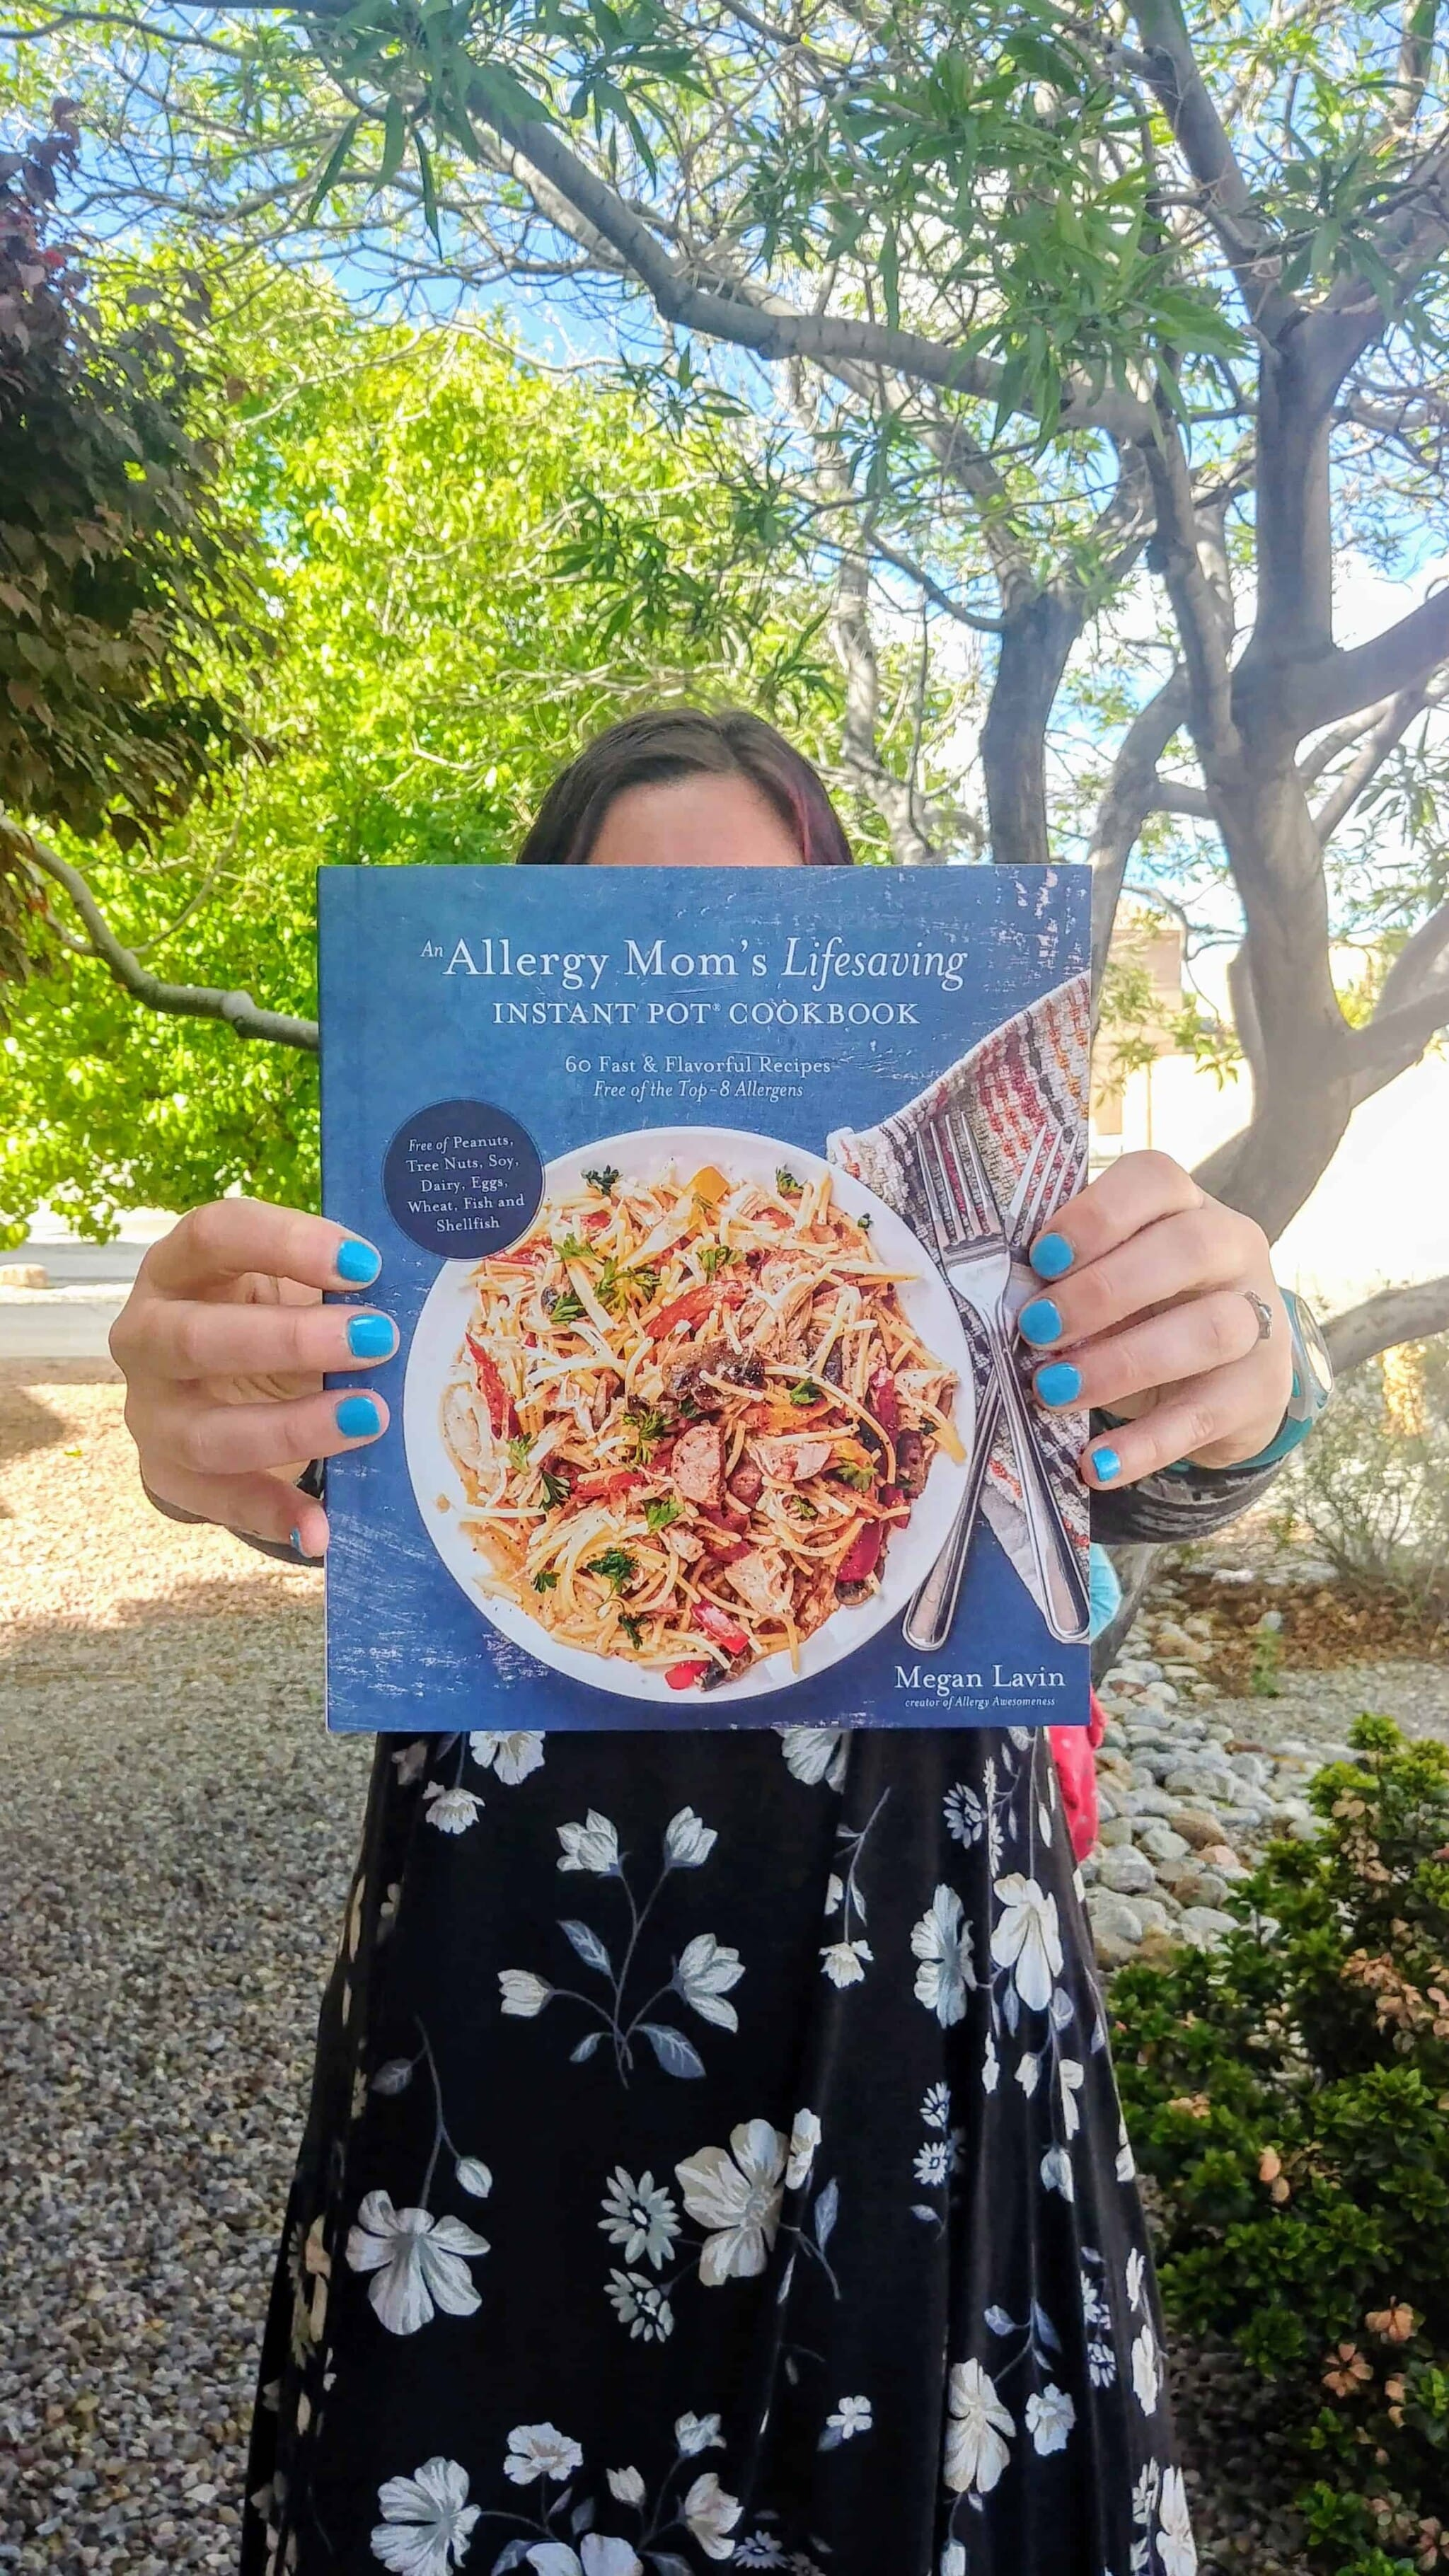 woman in dress with hand with blue nails holding an allergy mom's lifesaving instant pot cookbook in front of her face